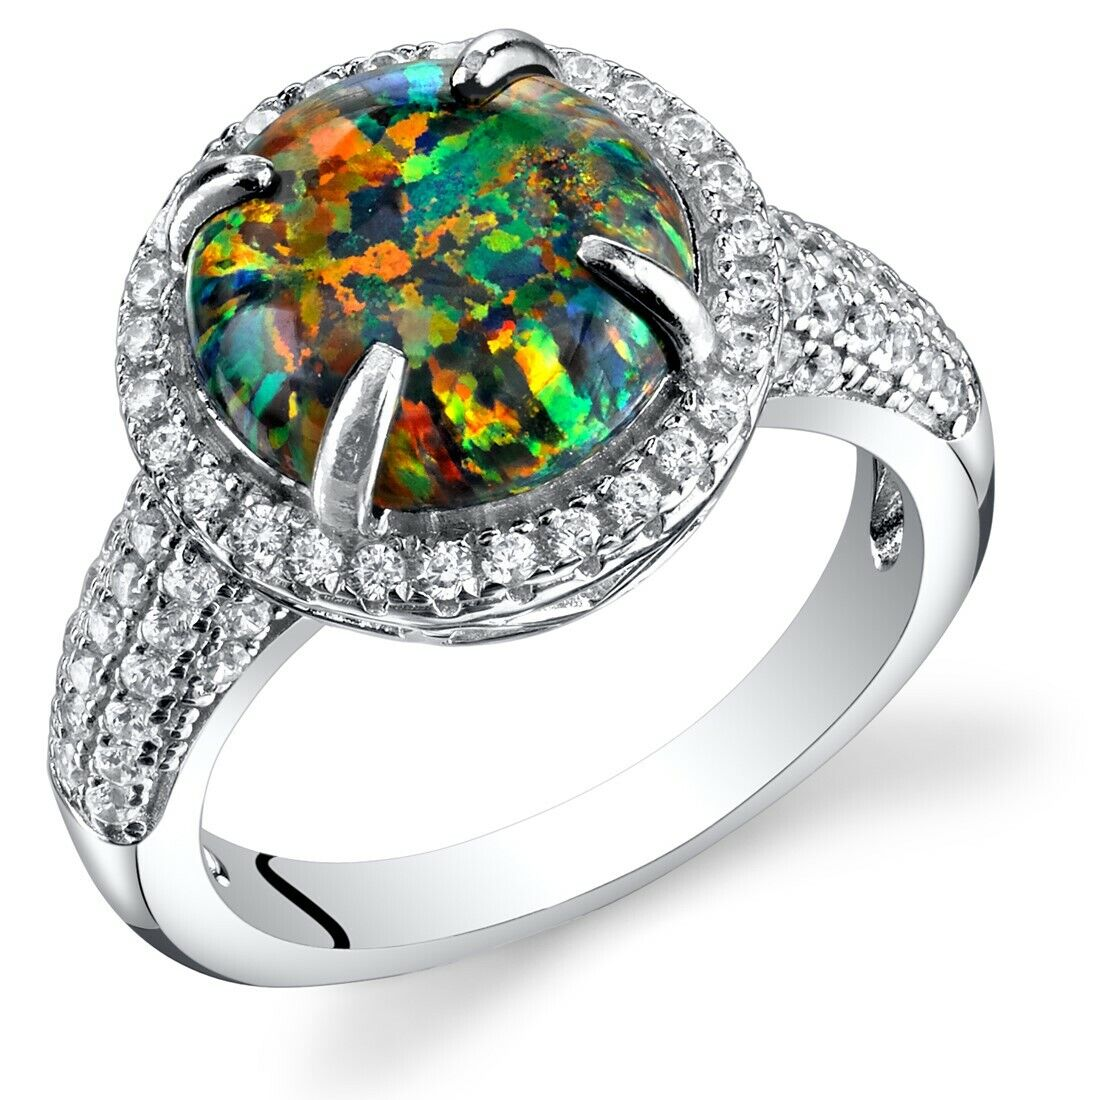 1.50 cts Round Cut Peridot  Ring Sterling Silver Size 5 to 9